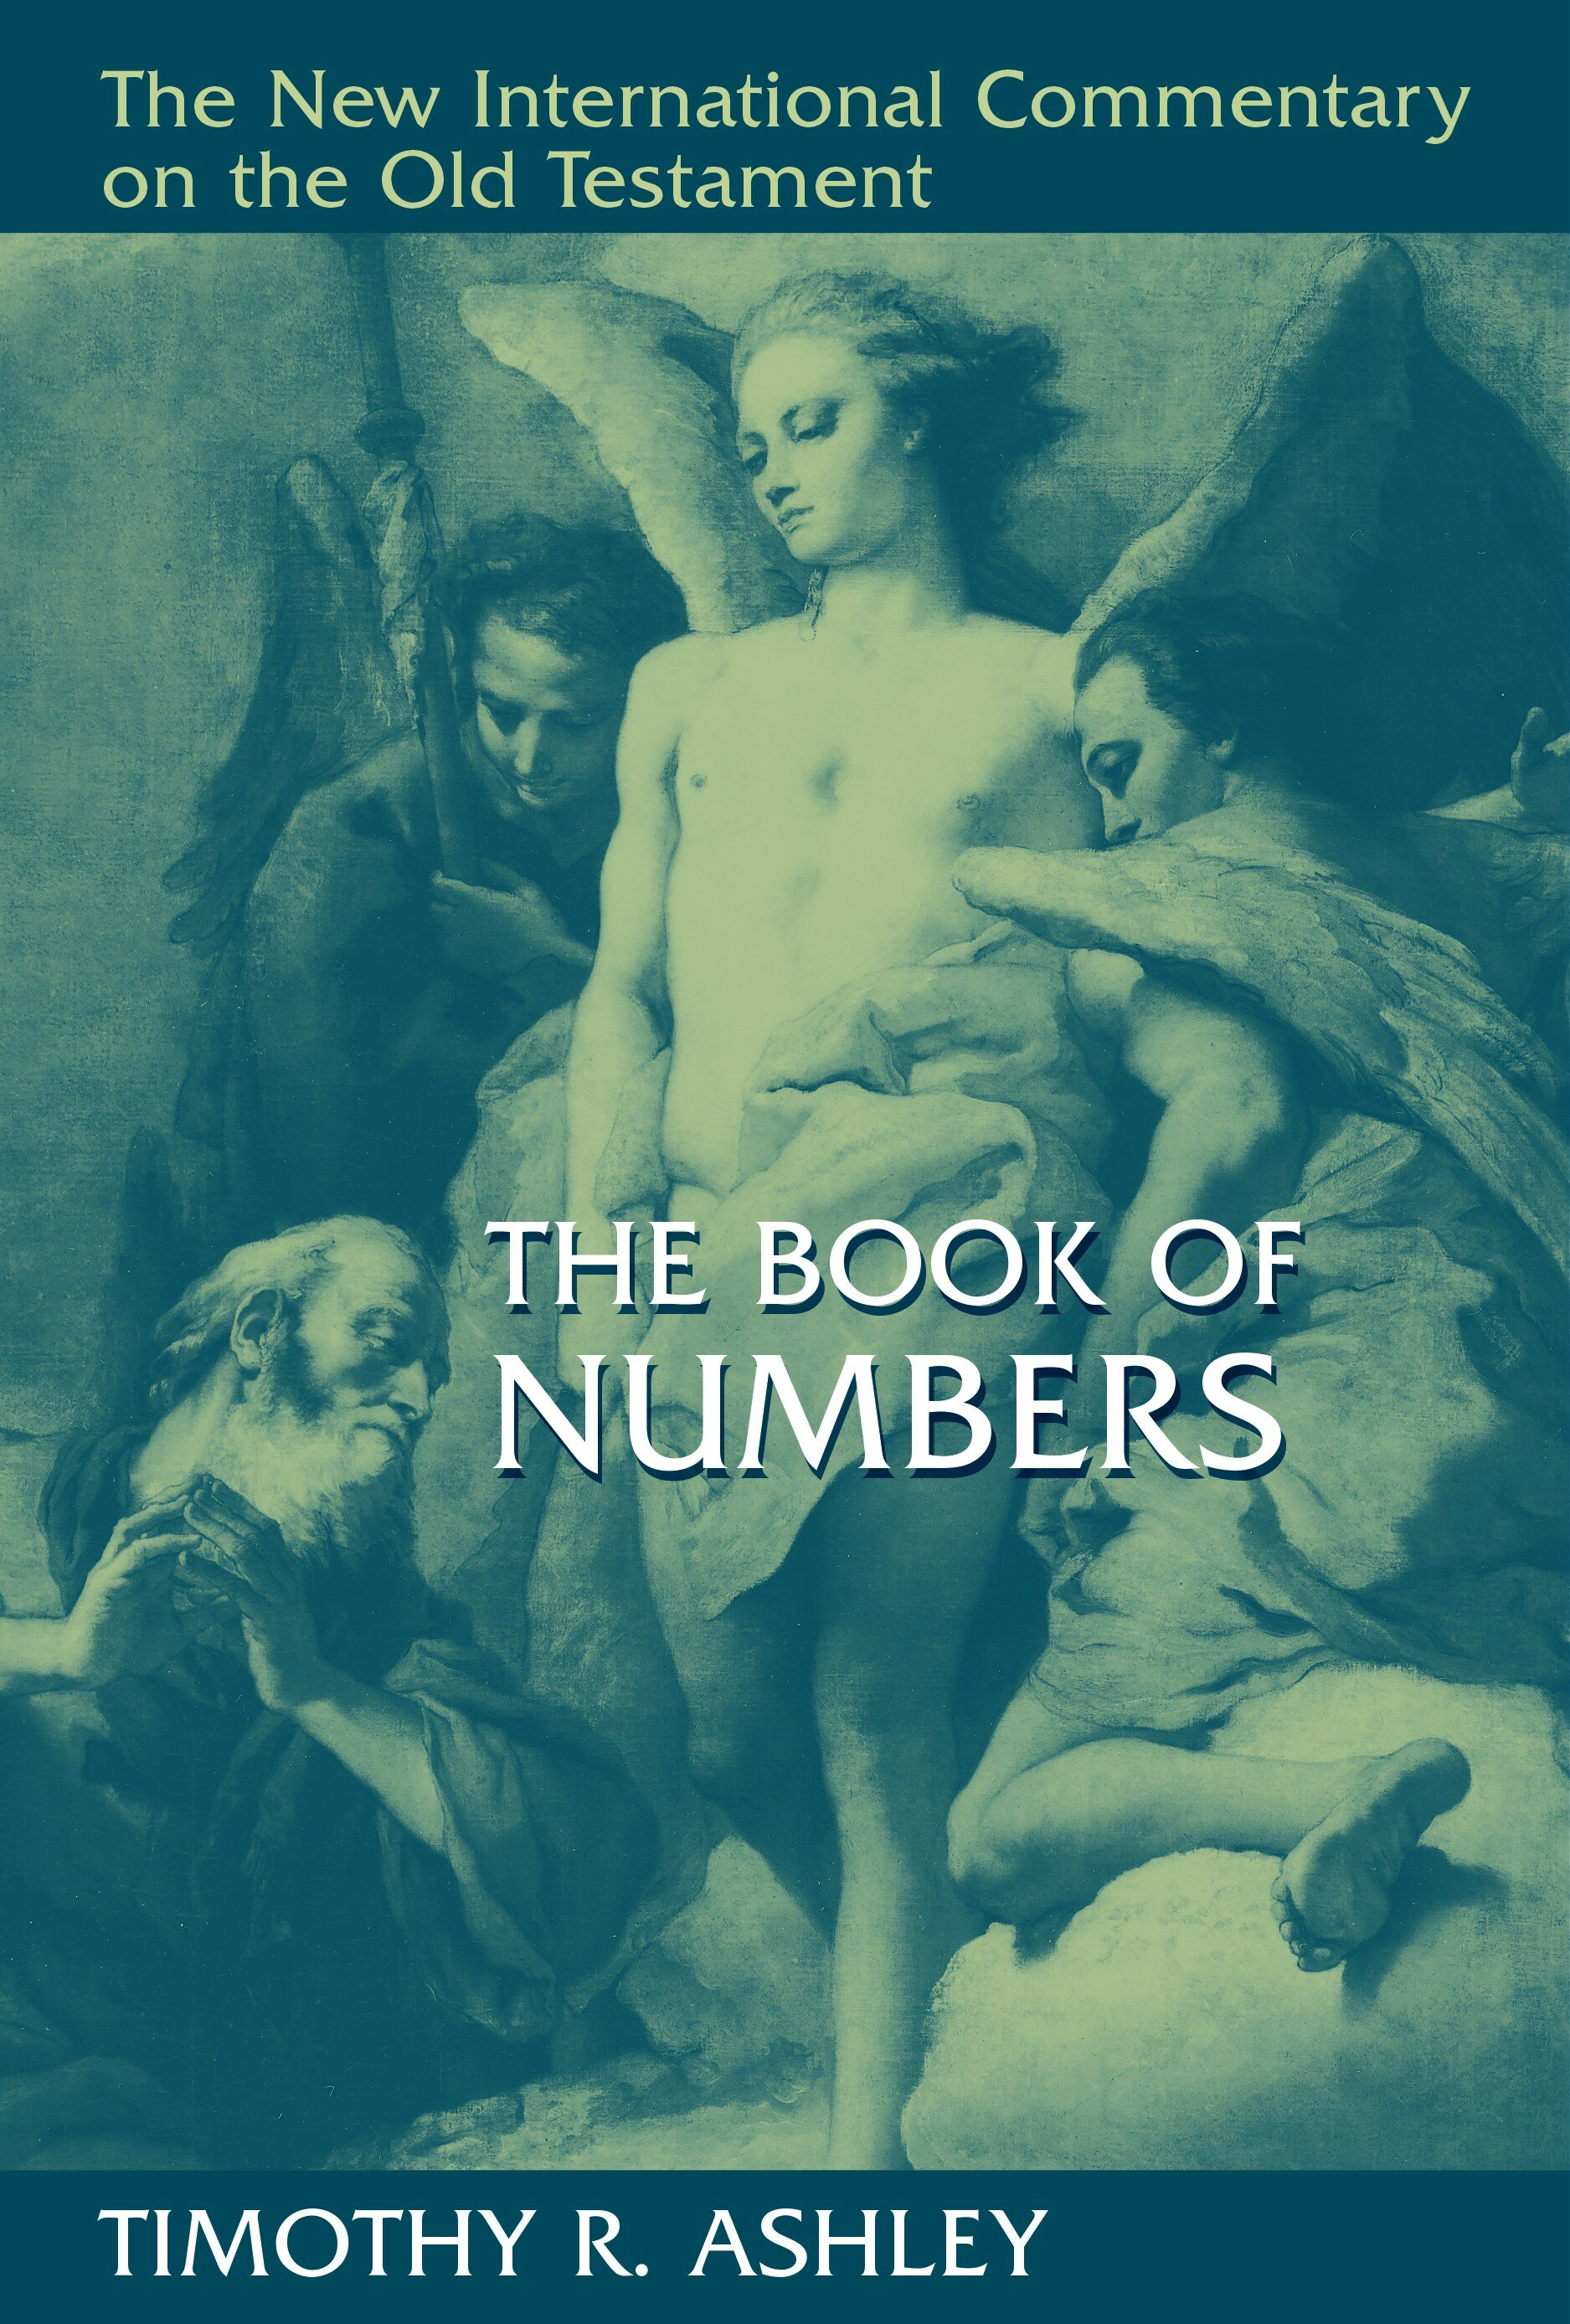 The Book of Numbers (The New International Commentary on the Old Testament | NICOT)